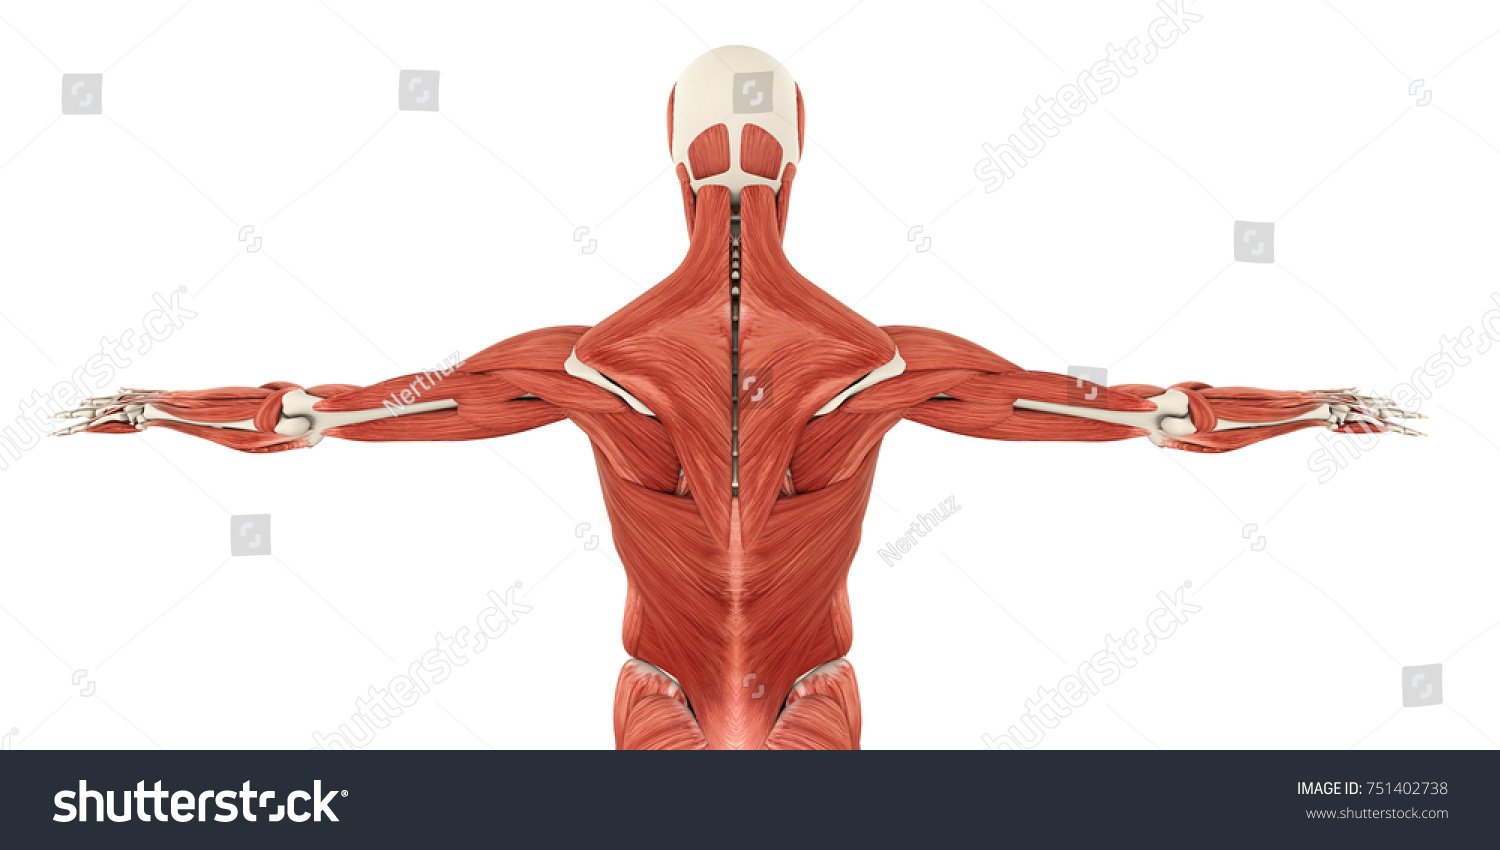 Muscles Back Anatomy 3 D Rendering Stock Illustration 751402738 ...